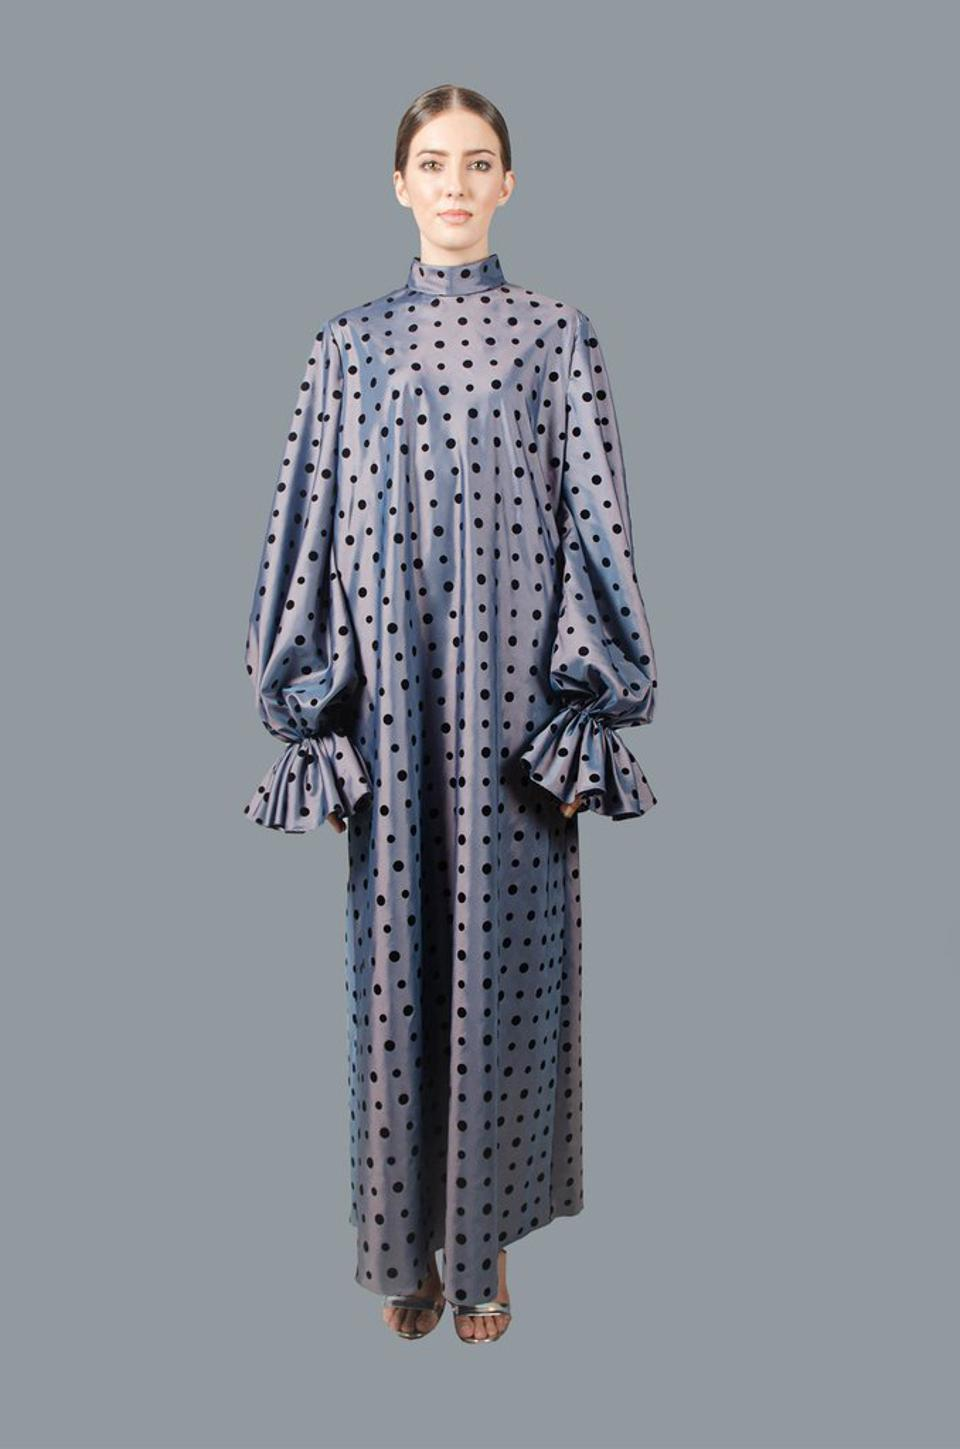 A polka dot dress with puffed sleeves from Puey Quinones is idea for WFH days